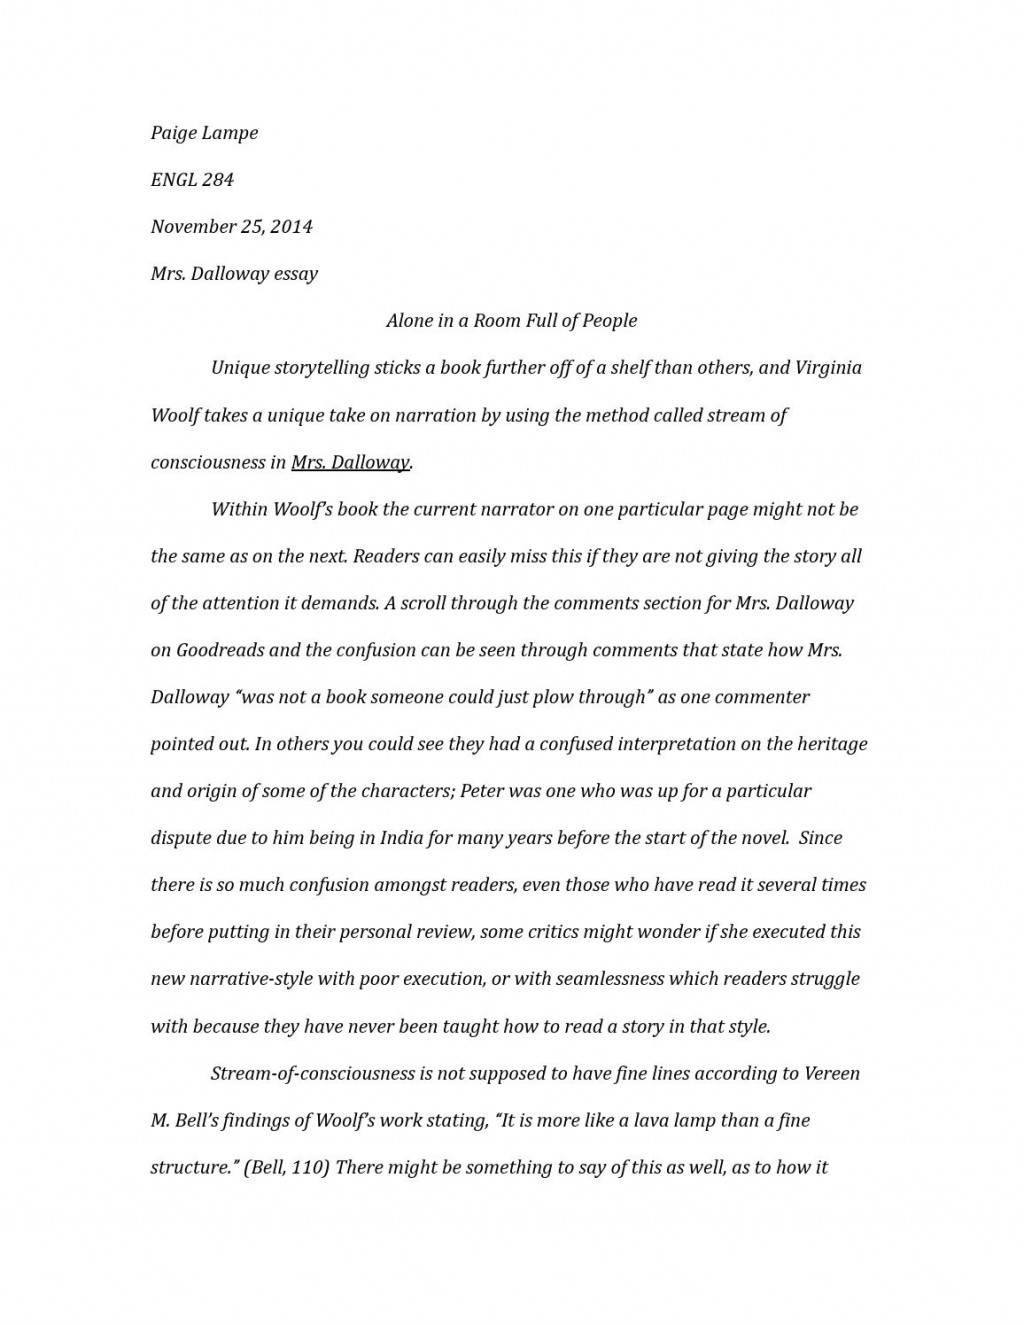 002 Mrs Dalloway Essay Page 1 Marvelous Prompts Topics Large